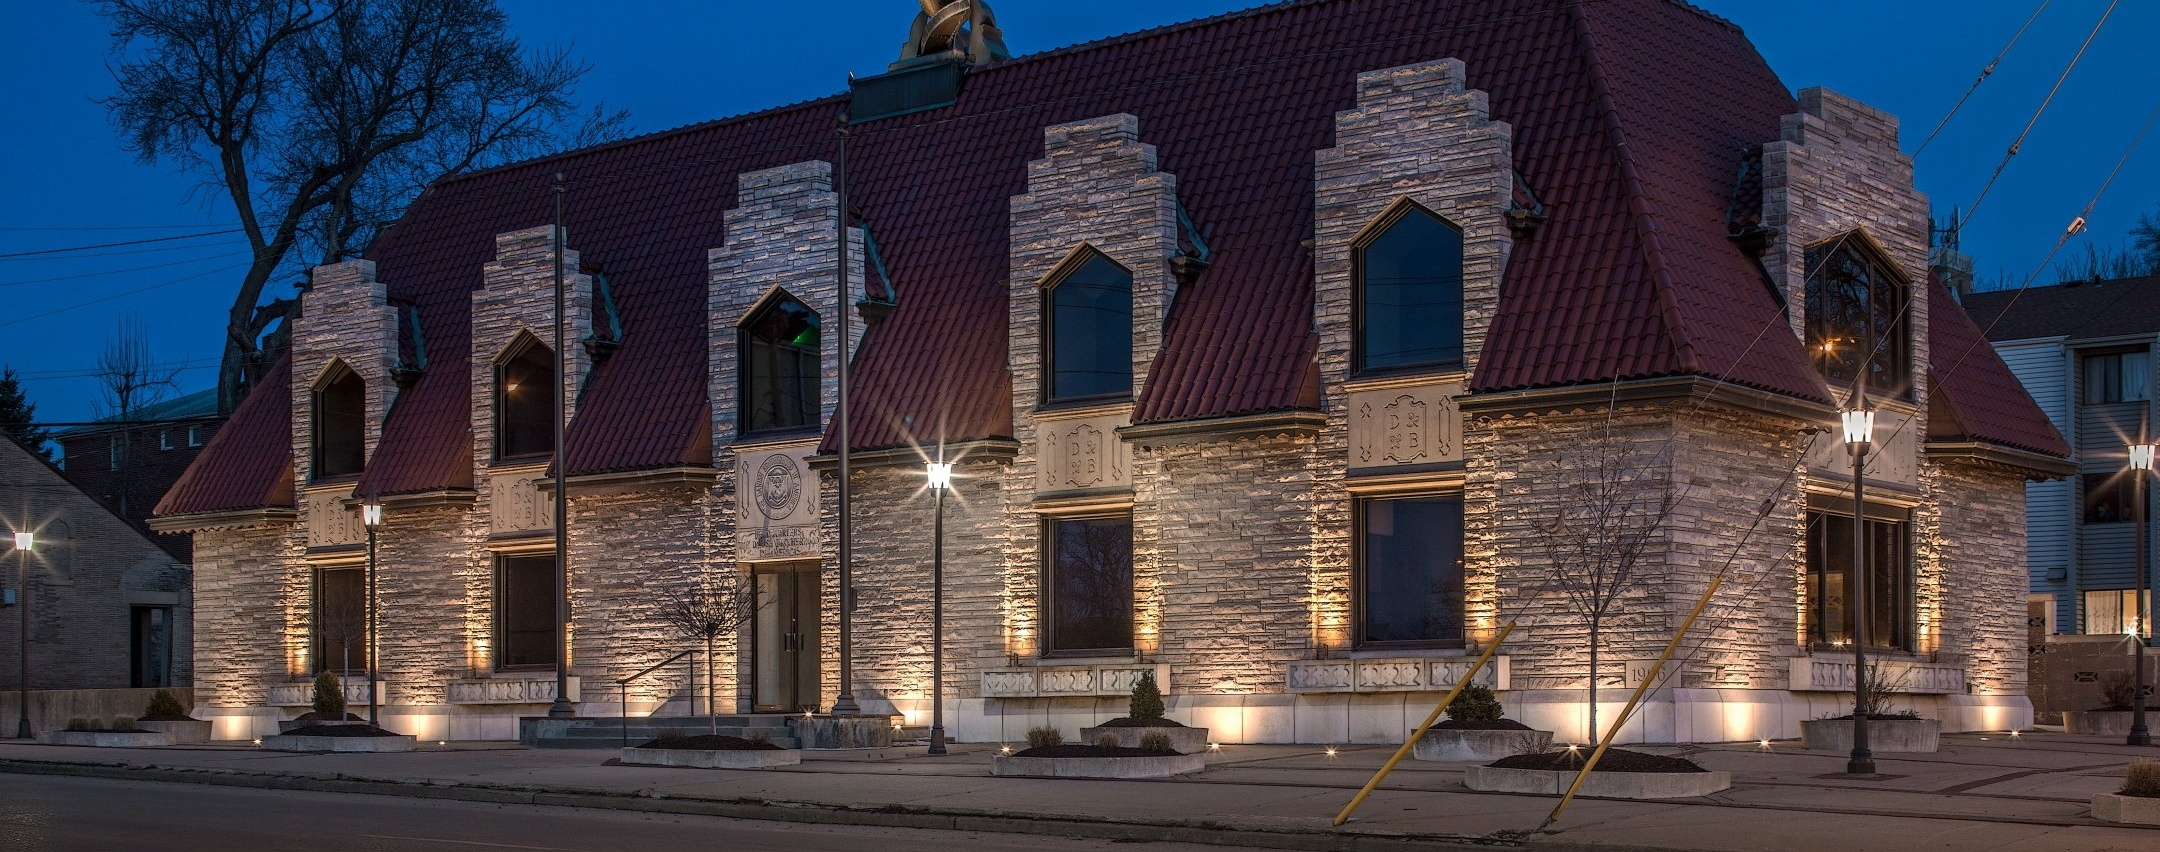 Education Facility Exterior Lighting - Landscape Lighting Schools & University Campus